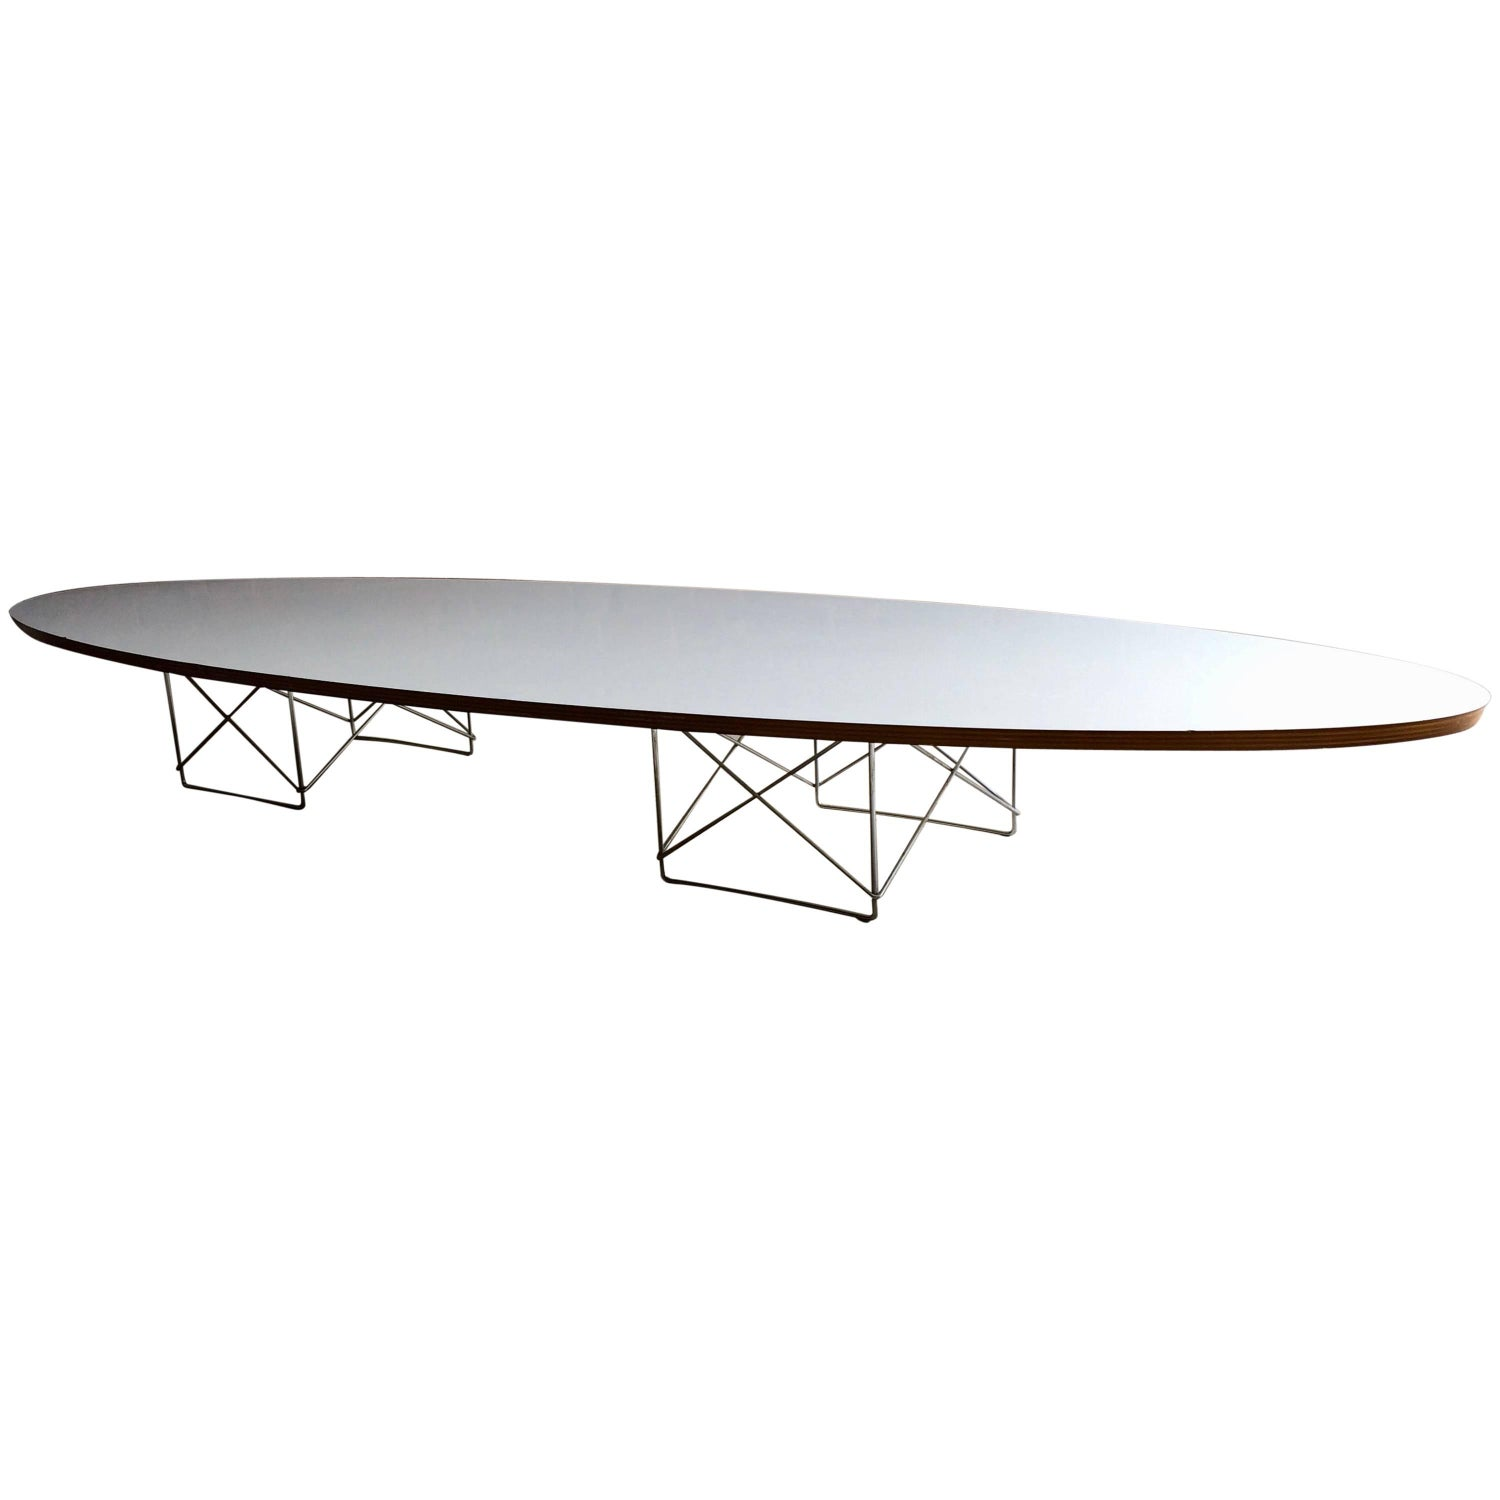 Charles and Ray Eames Elliptical Etr Coffee Table for Vitra